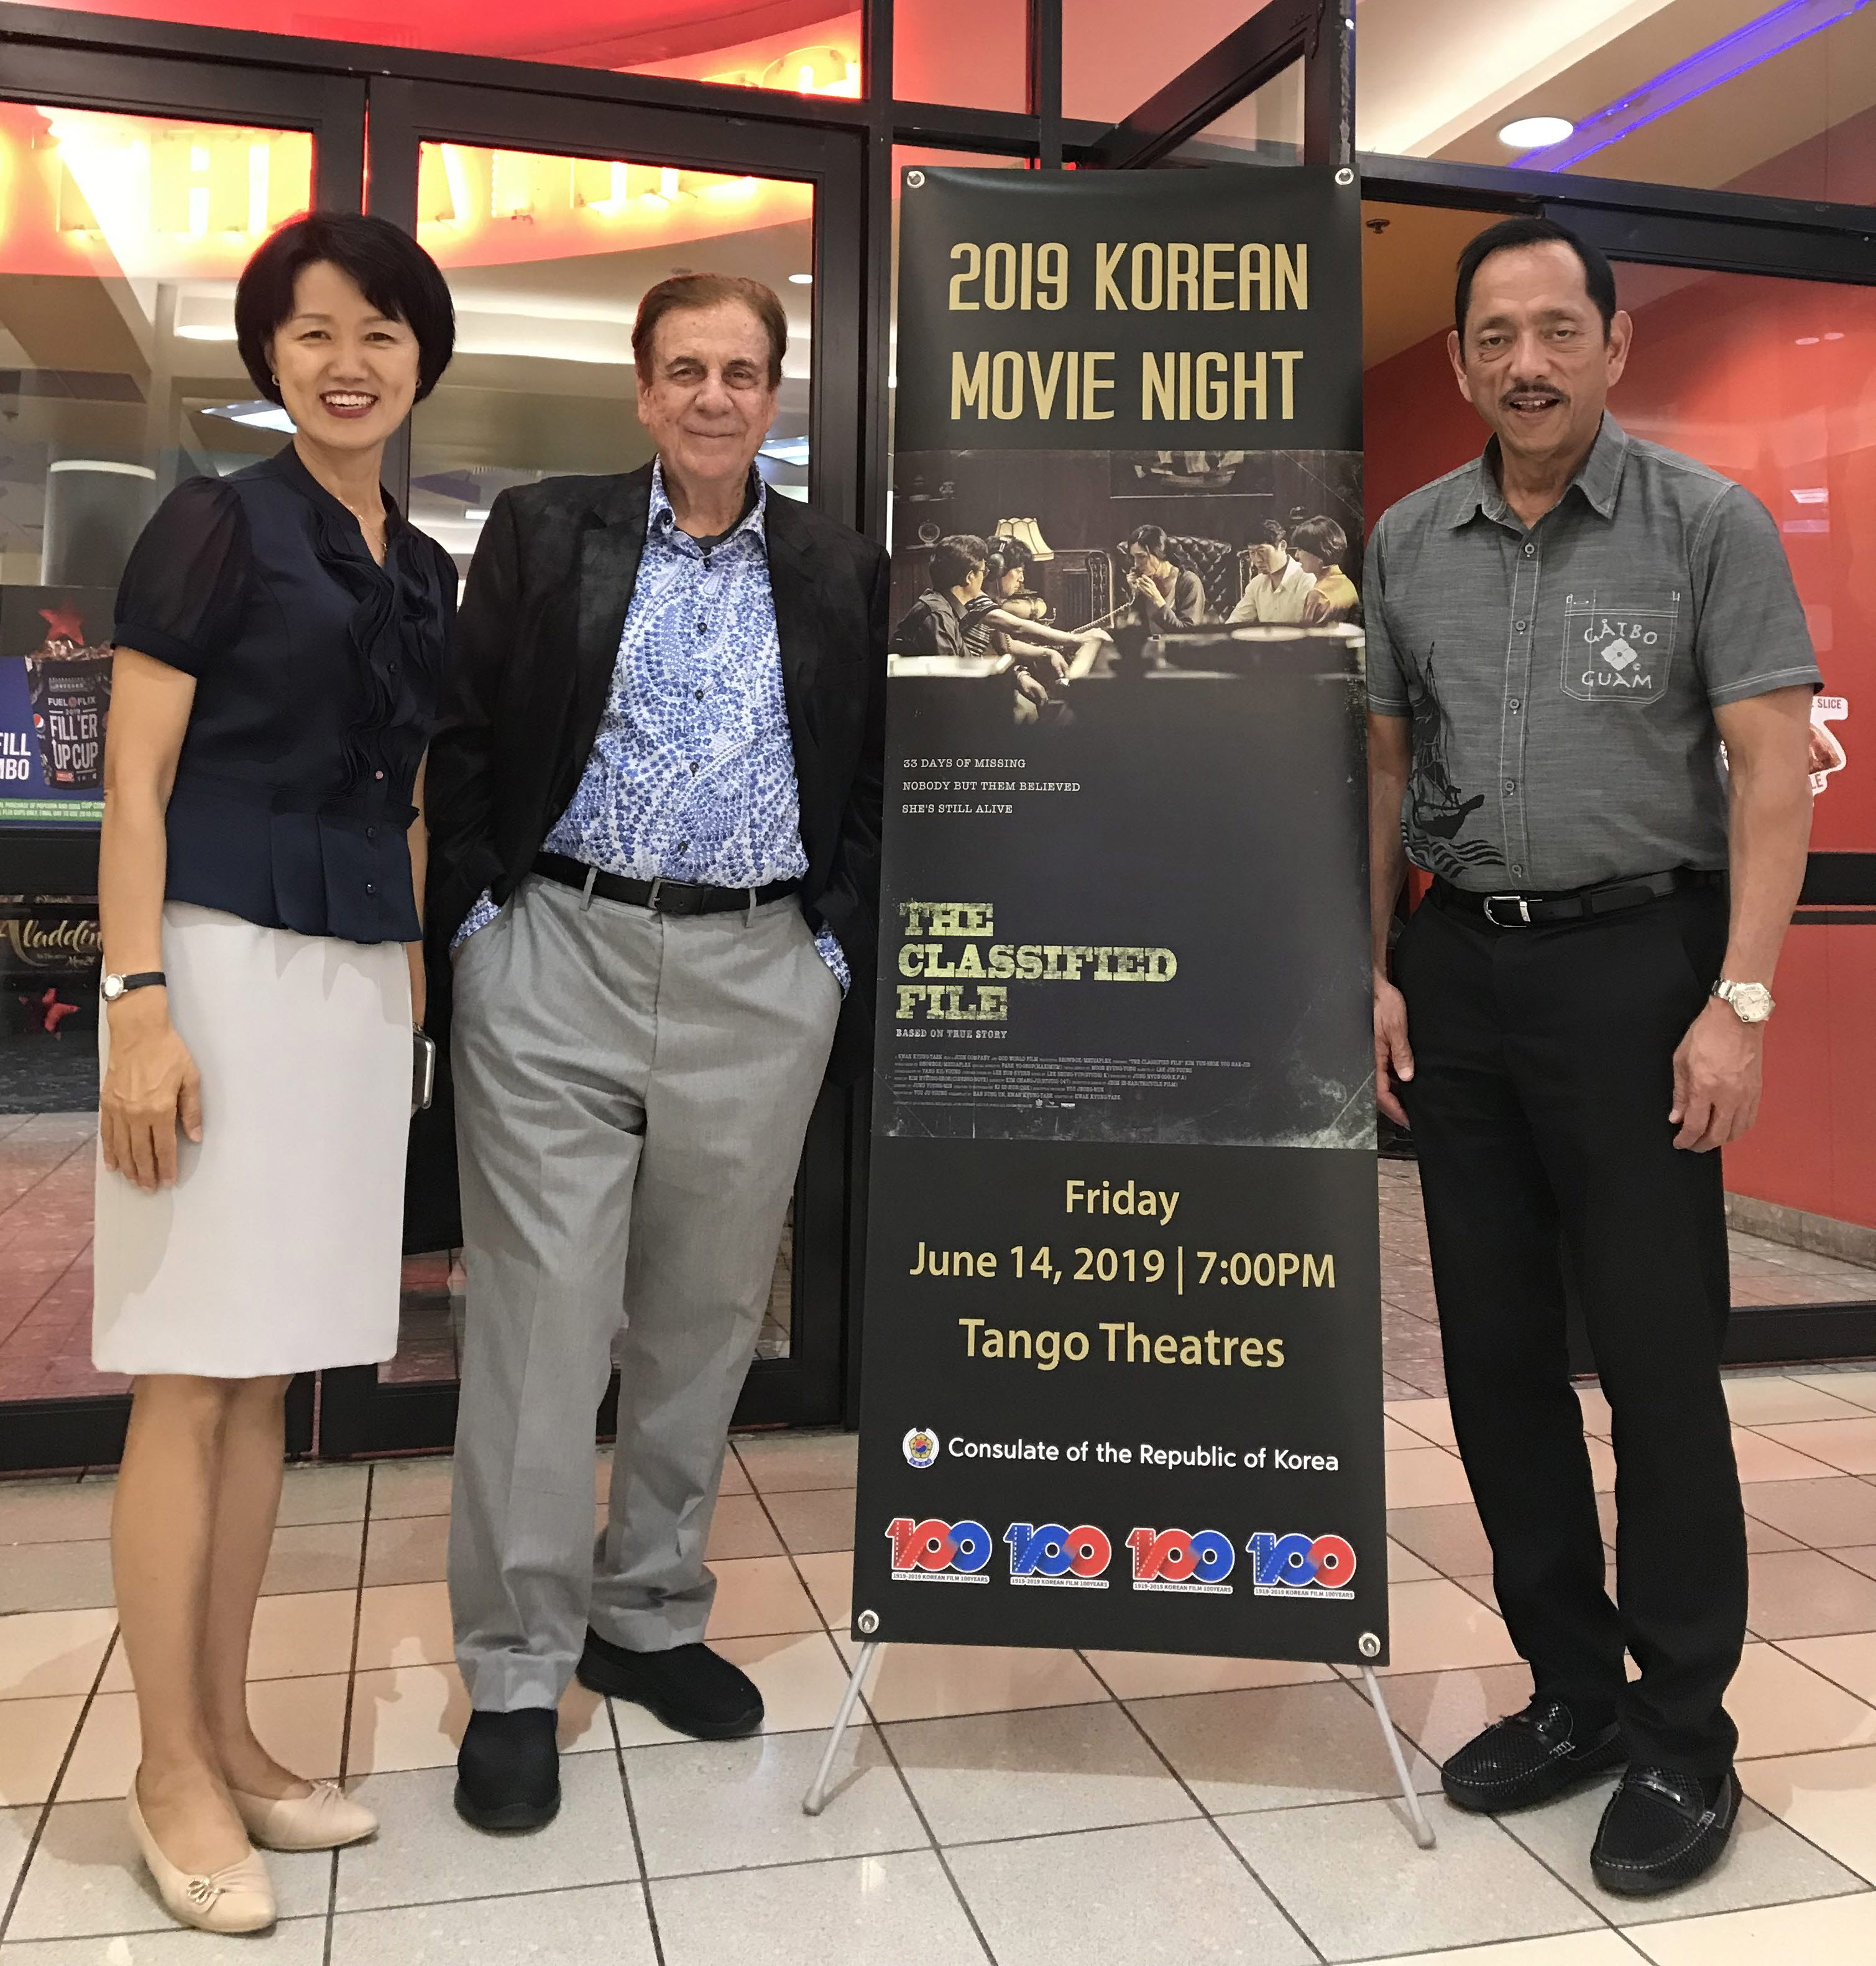 2019 Korean Movie Night Hosted by the Consulate of the Republic of Korea in Guam